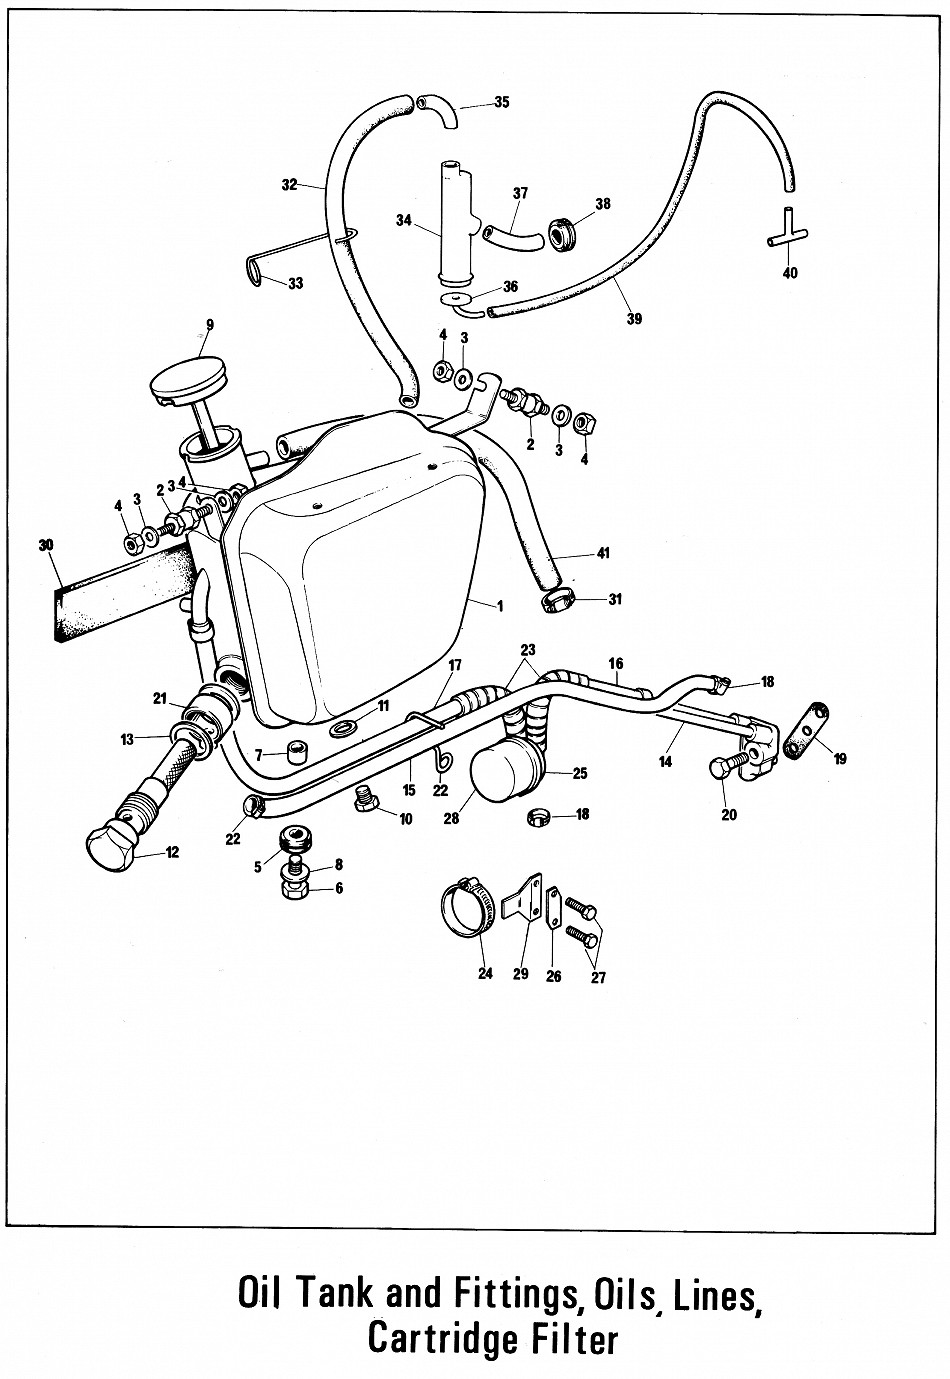 Norton  mando Engine Diagram likewise 174702 Ford Motorcraft Model 740 additionally 1570040 Suspension Diagram as well Product product id 476427 besides Model C305. on oil filter thread size